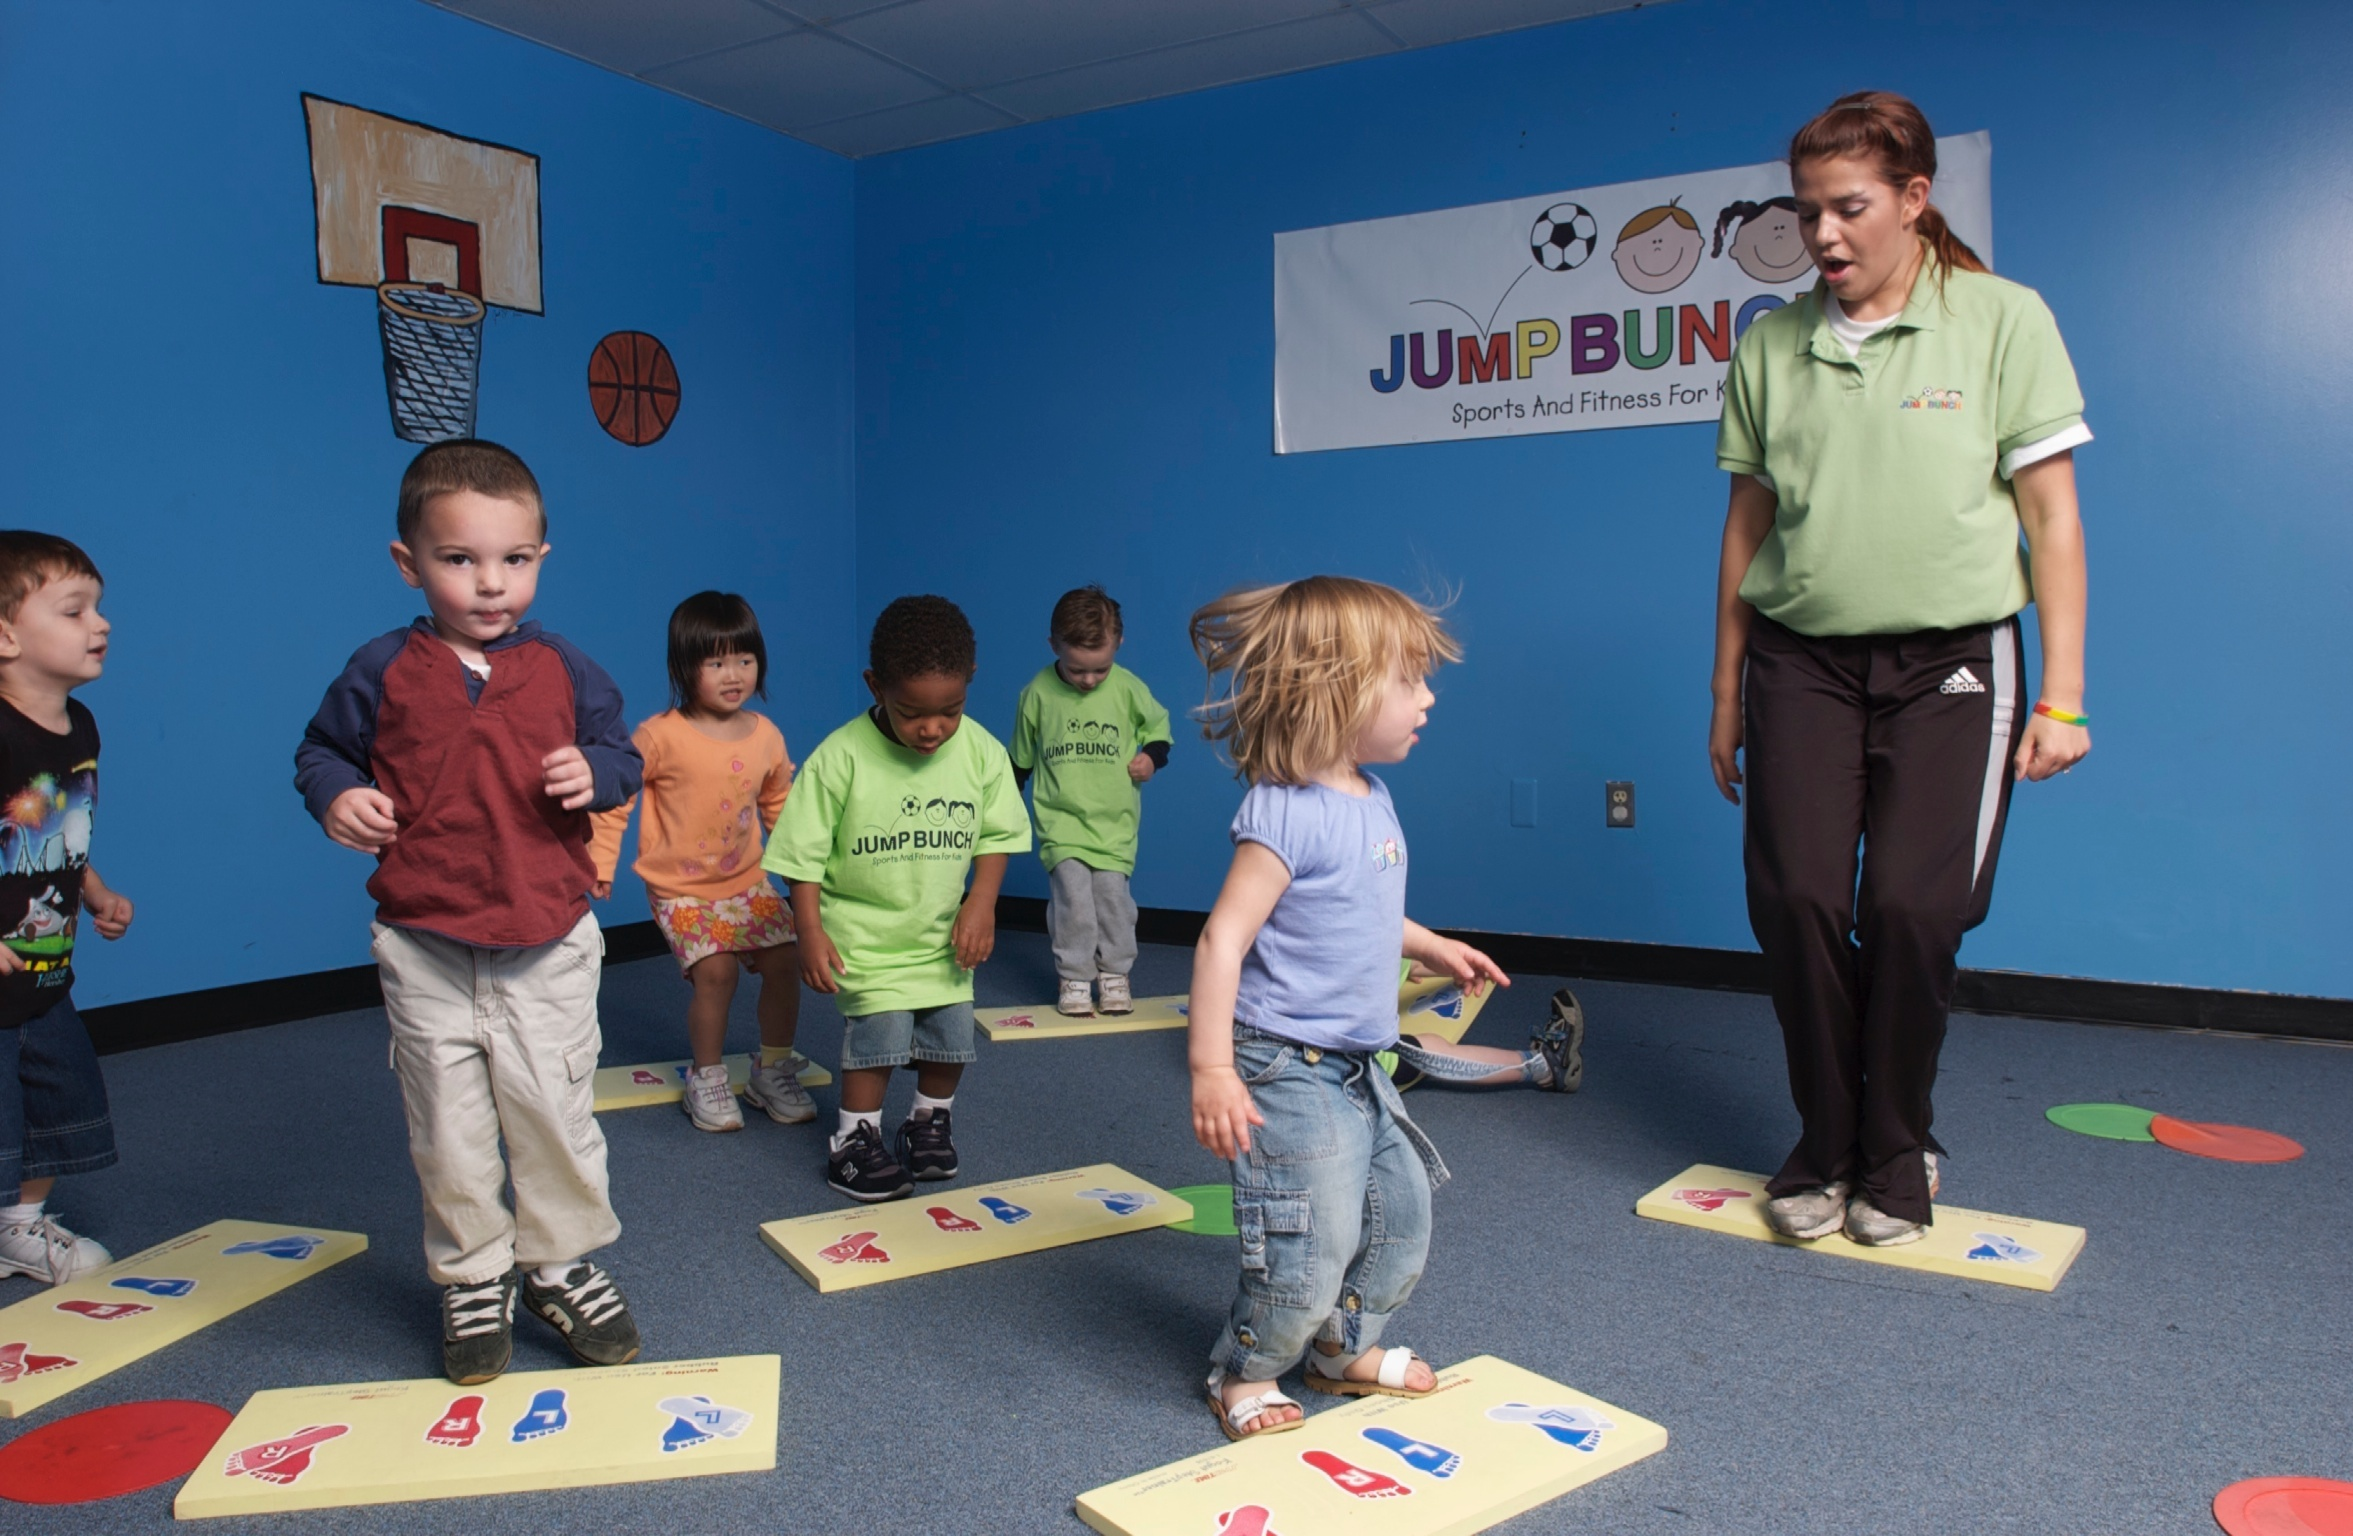 JumpBunch Denver Colorado | A Friendly Introduction to Sports and Fitness!